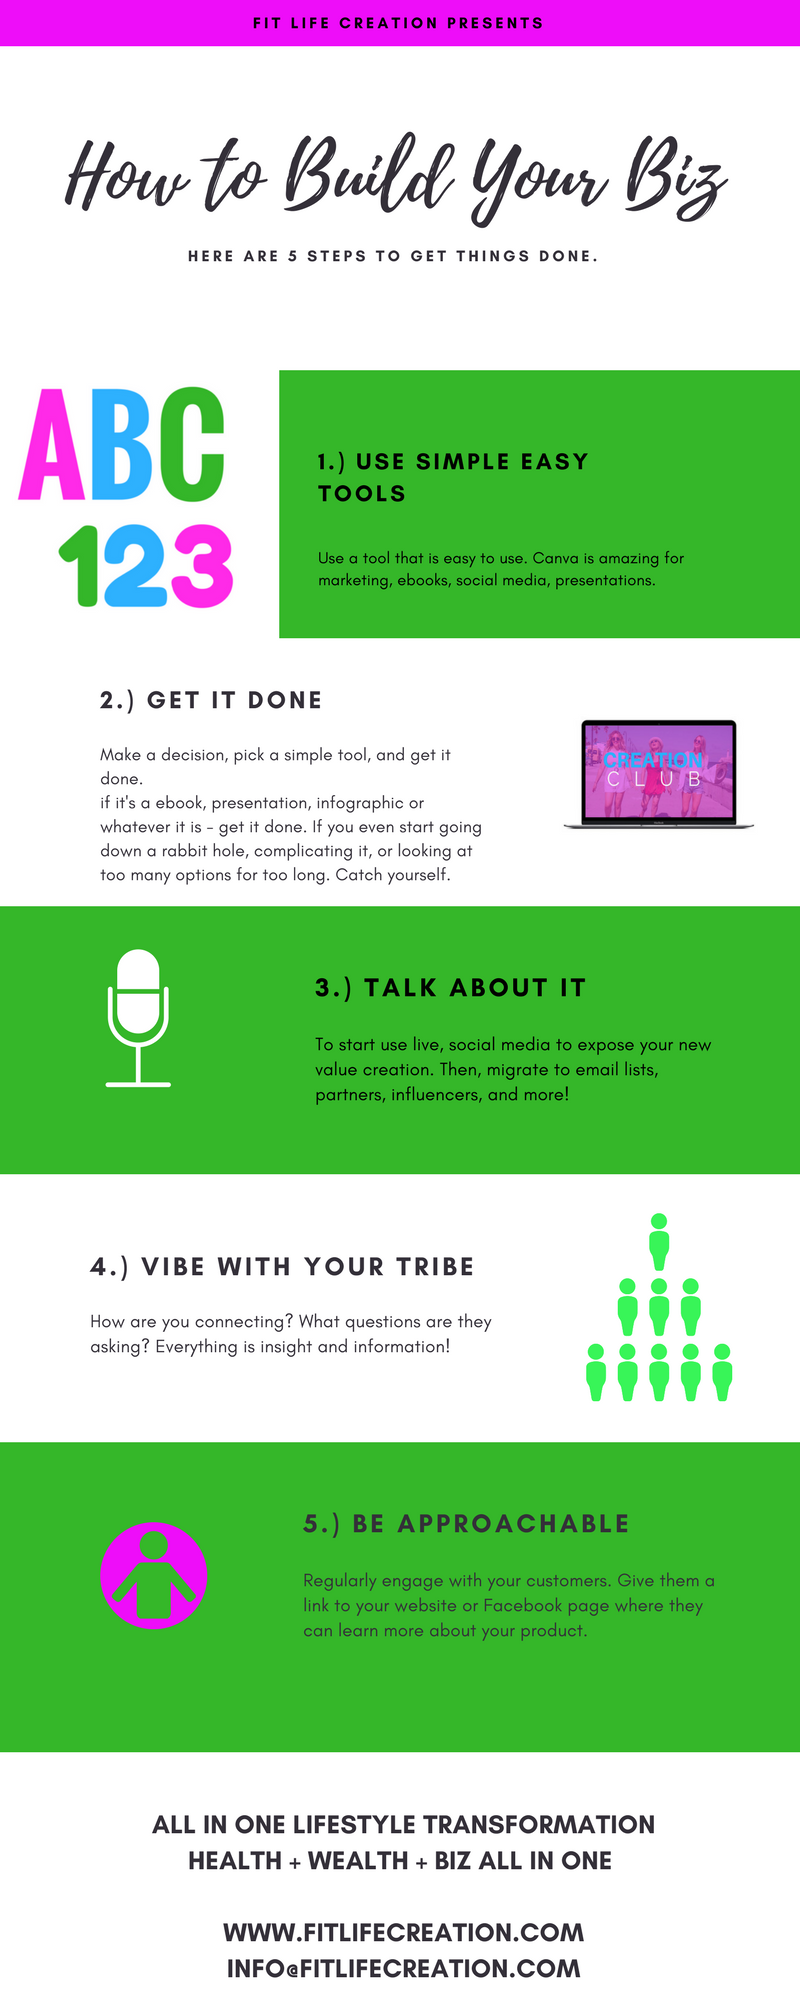 How To Build Your Business With Five Steps Want To Create More With Us In Our All In One Lifestyl Lifestyle Transformation Getting Things Done 14 Day Challenge